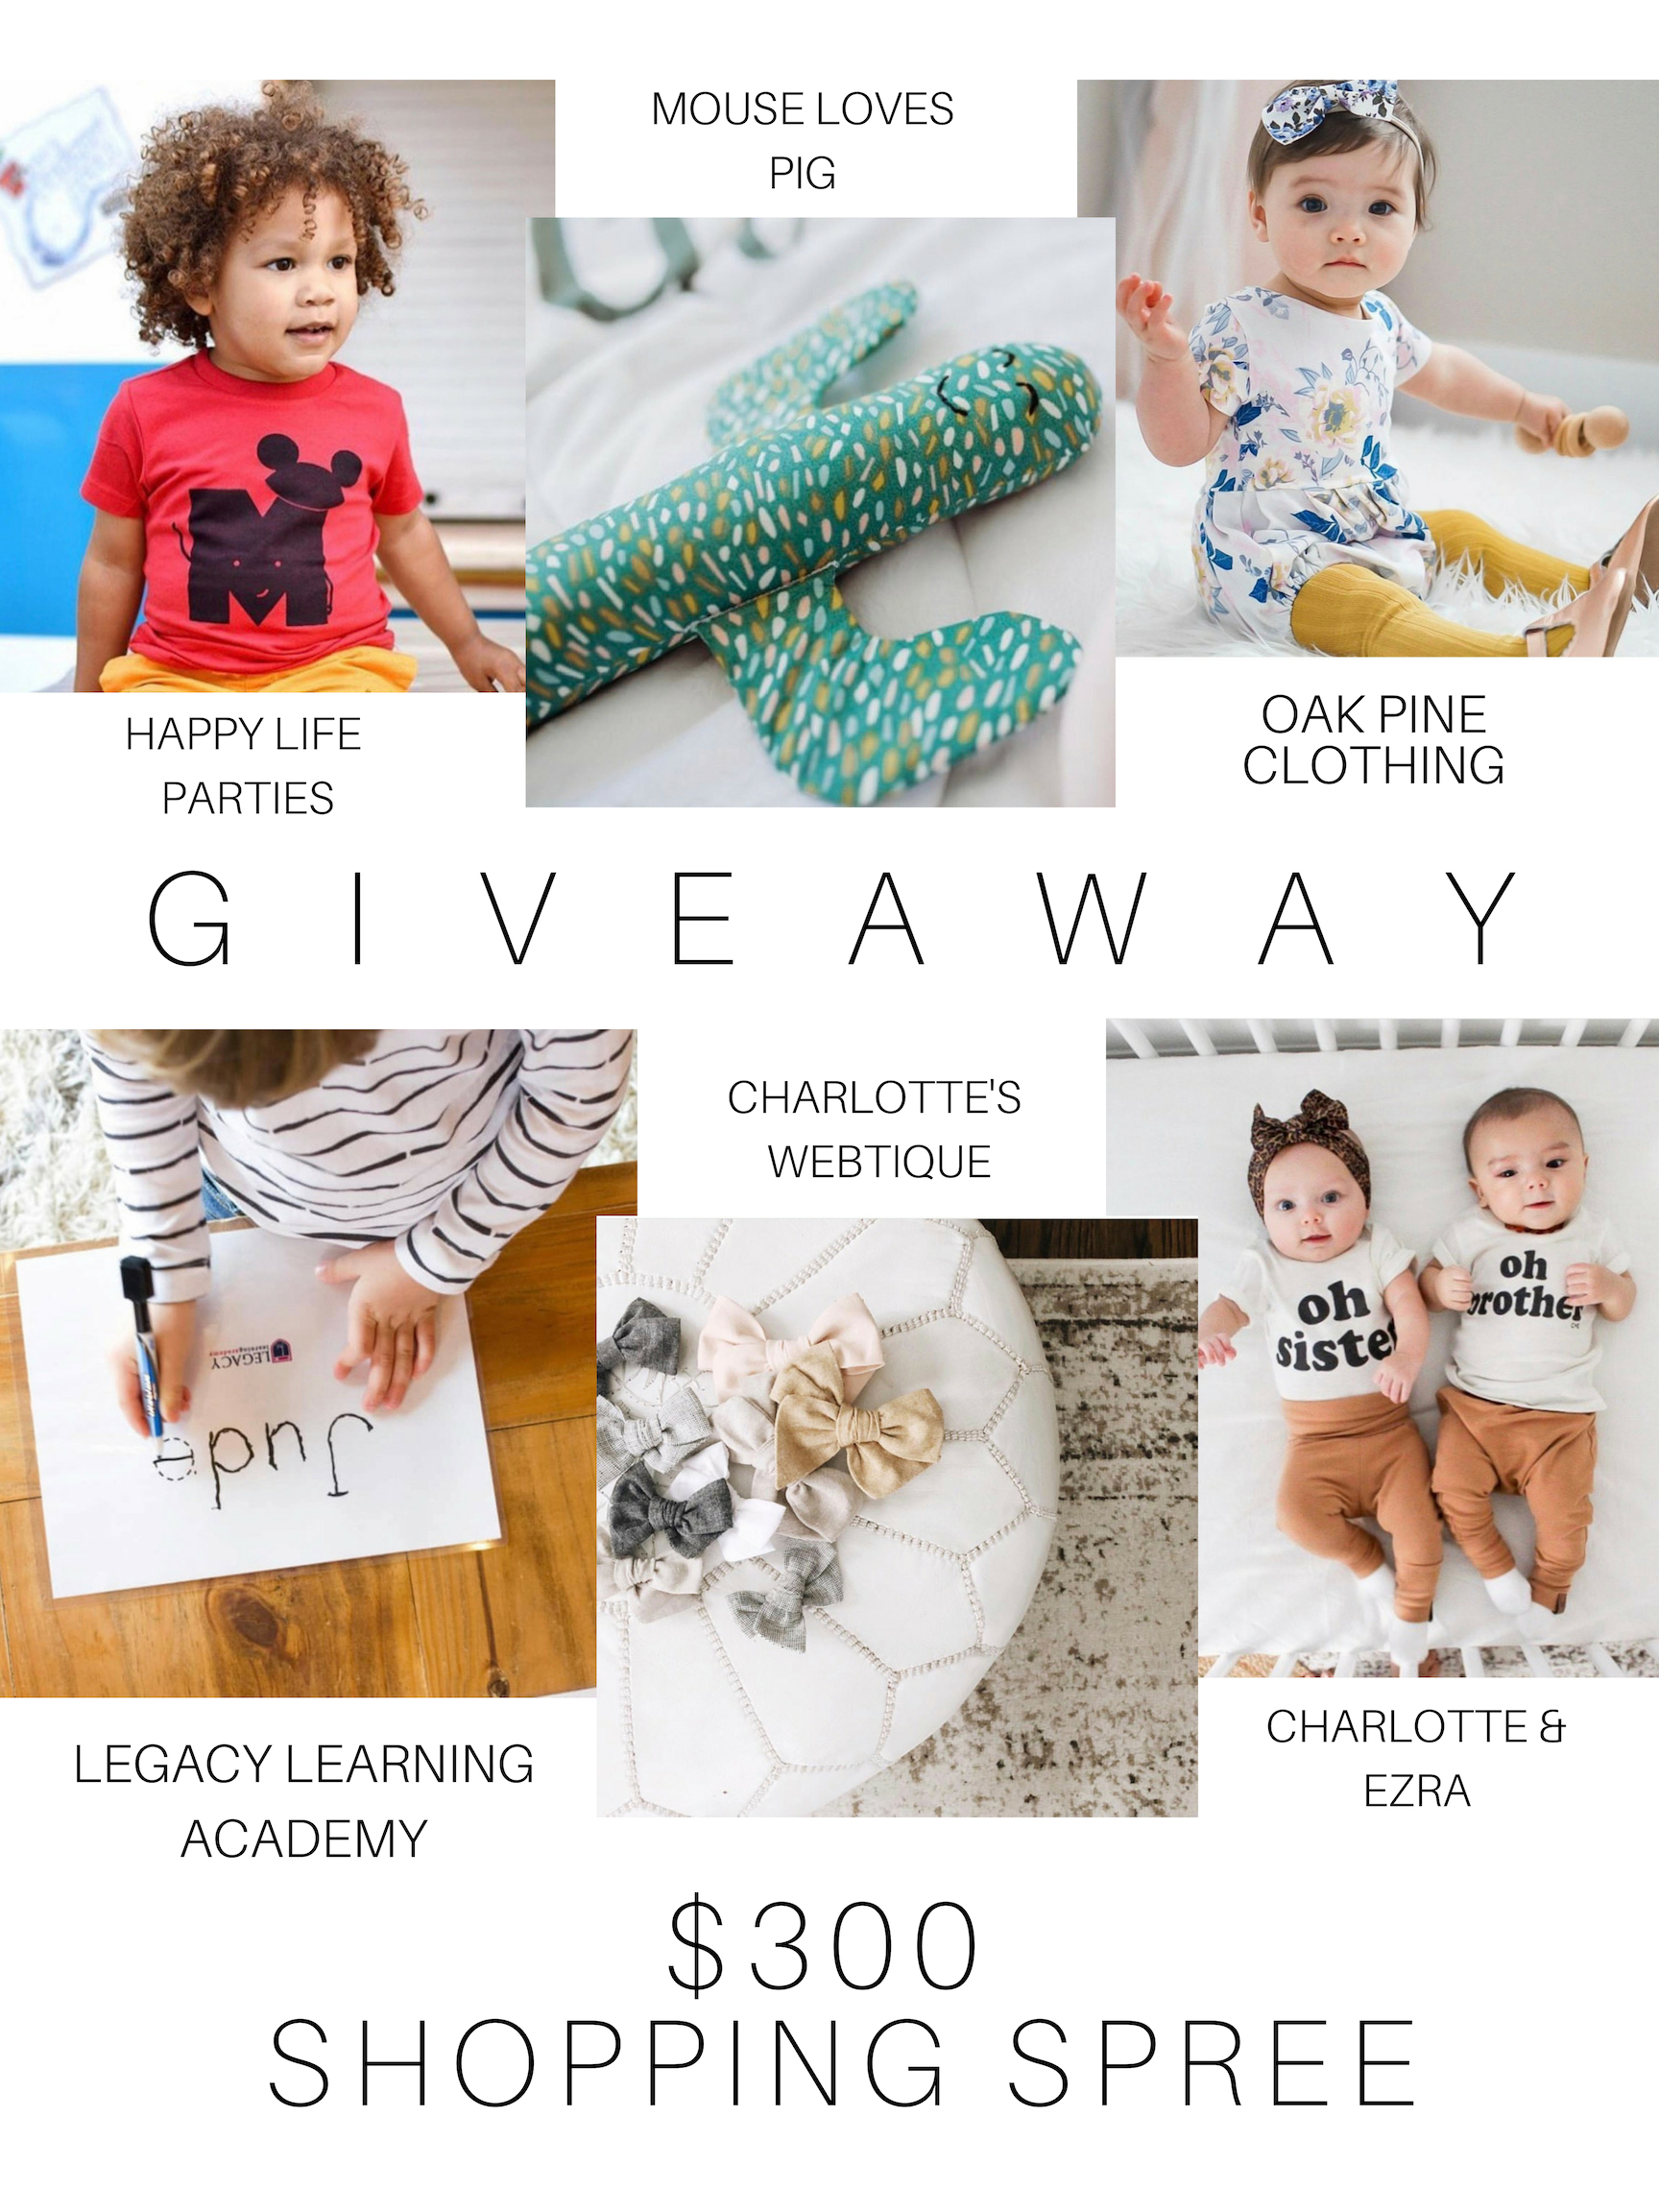 Enter for a chance to win a $300 Shopping Spree at six participating online stores! Giveaway Image